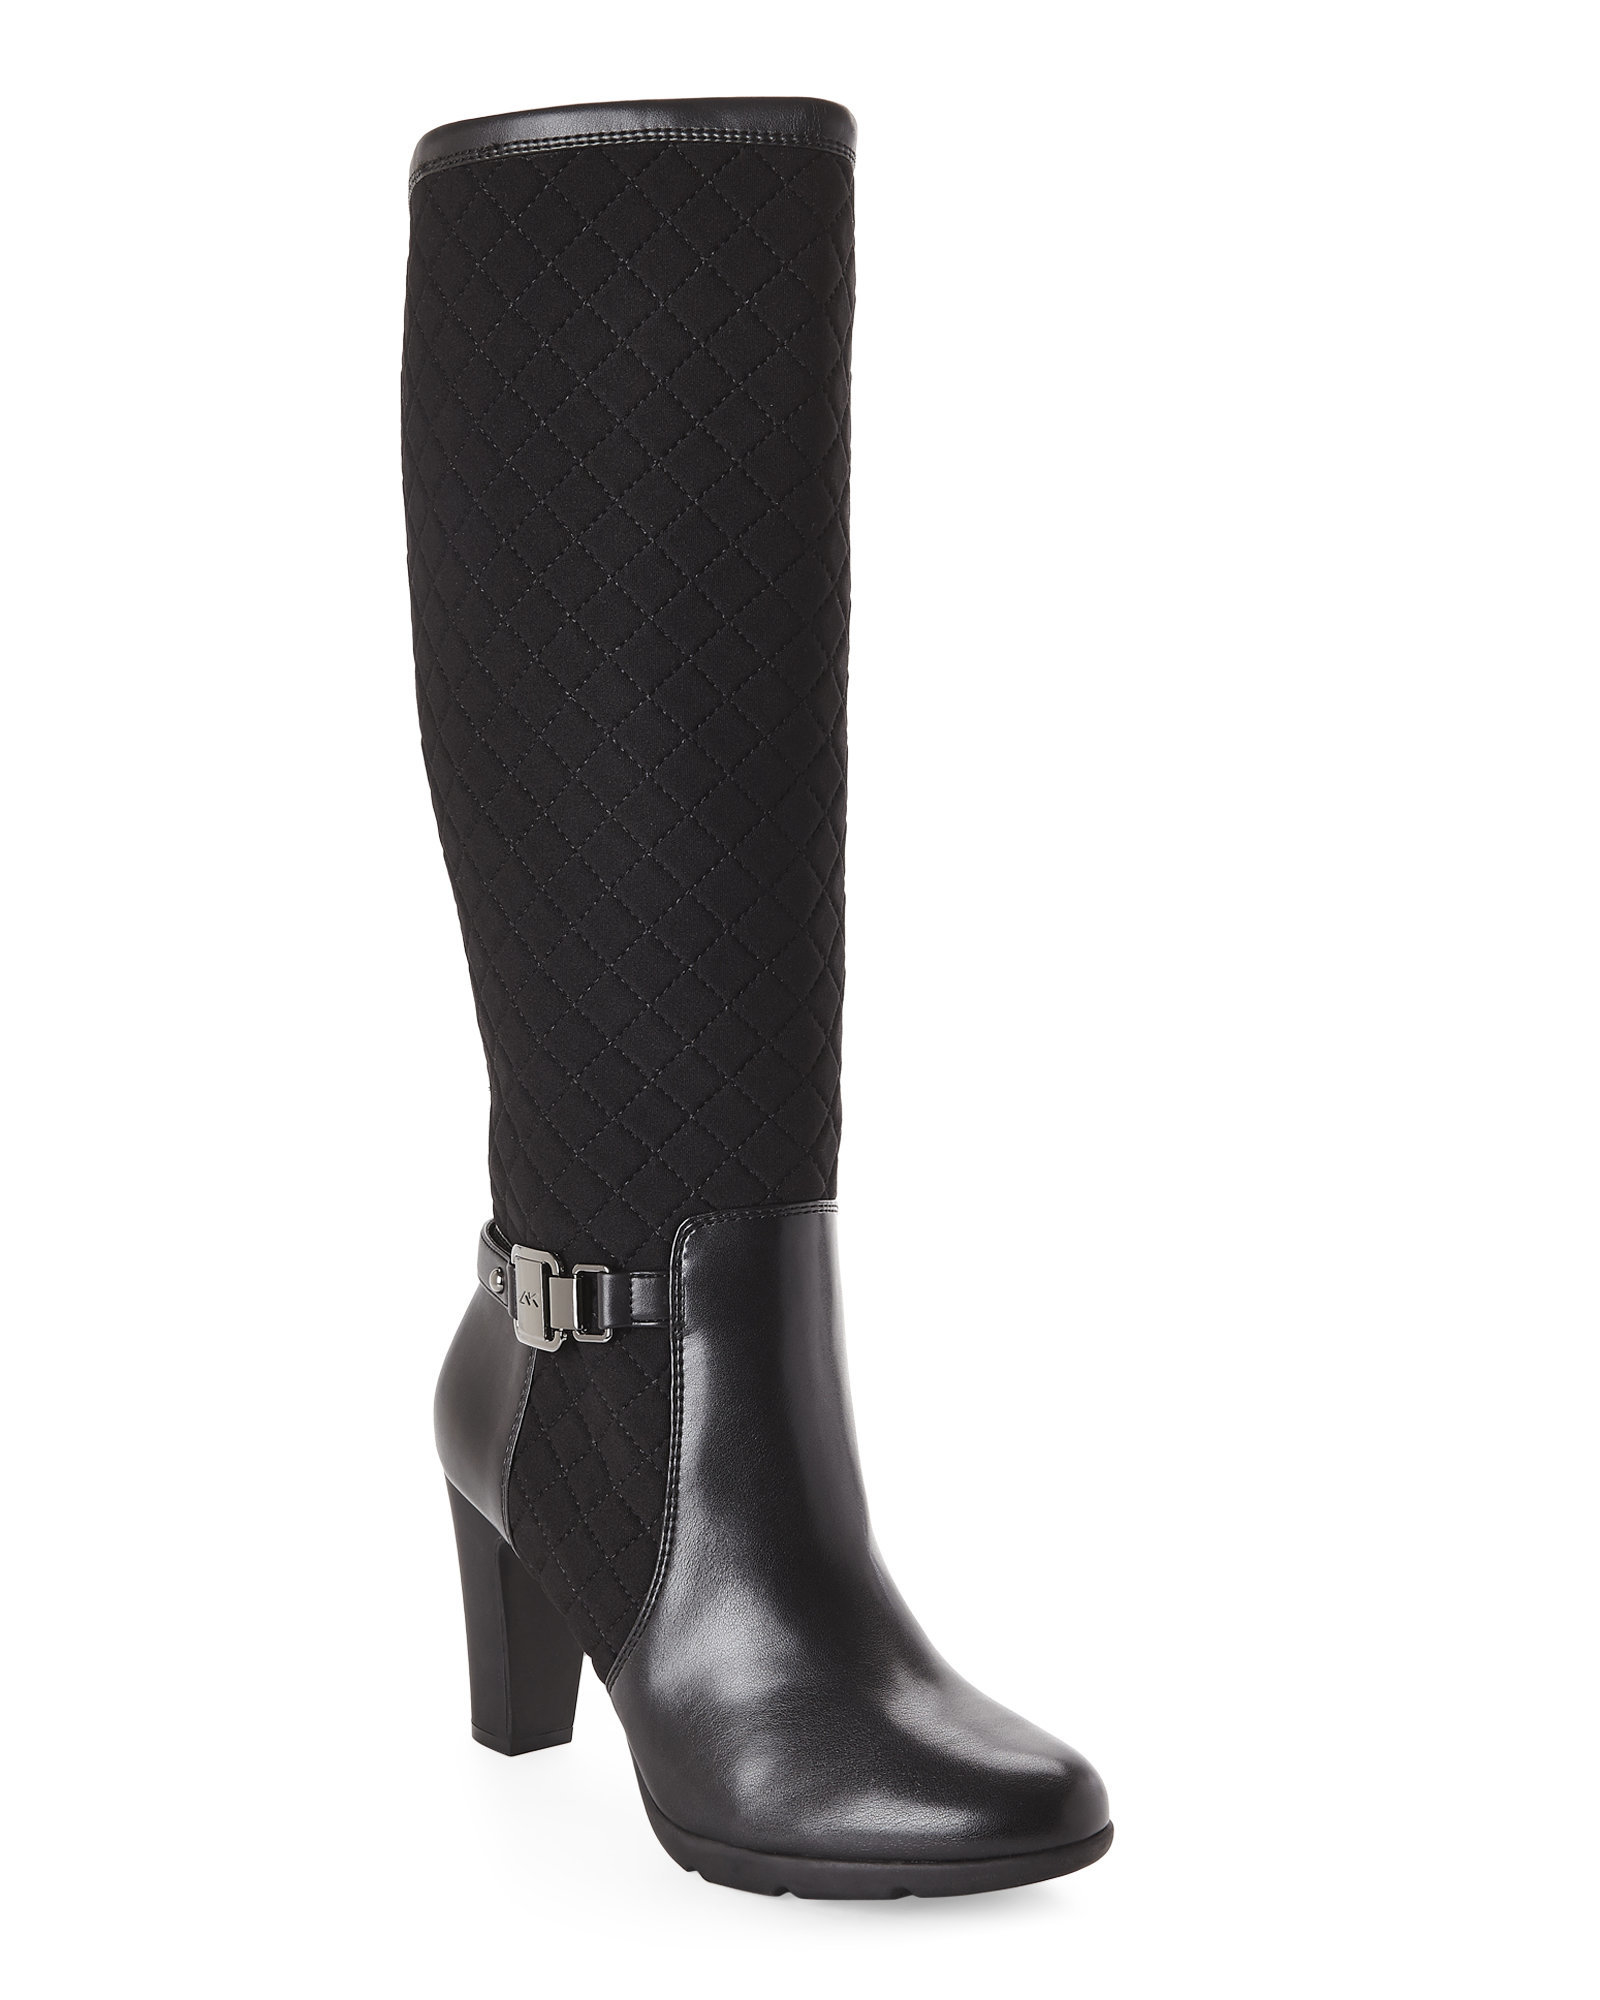 Ak anne klein Black Xtended Tall Boots in Black | Lyst